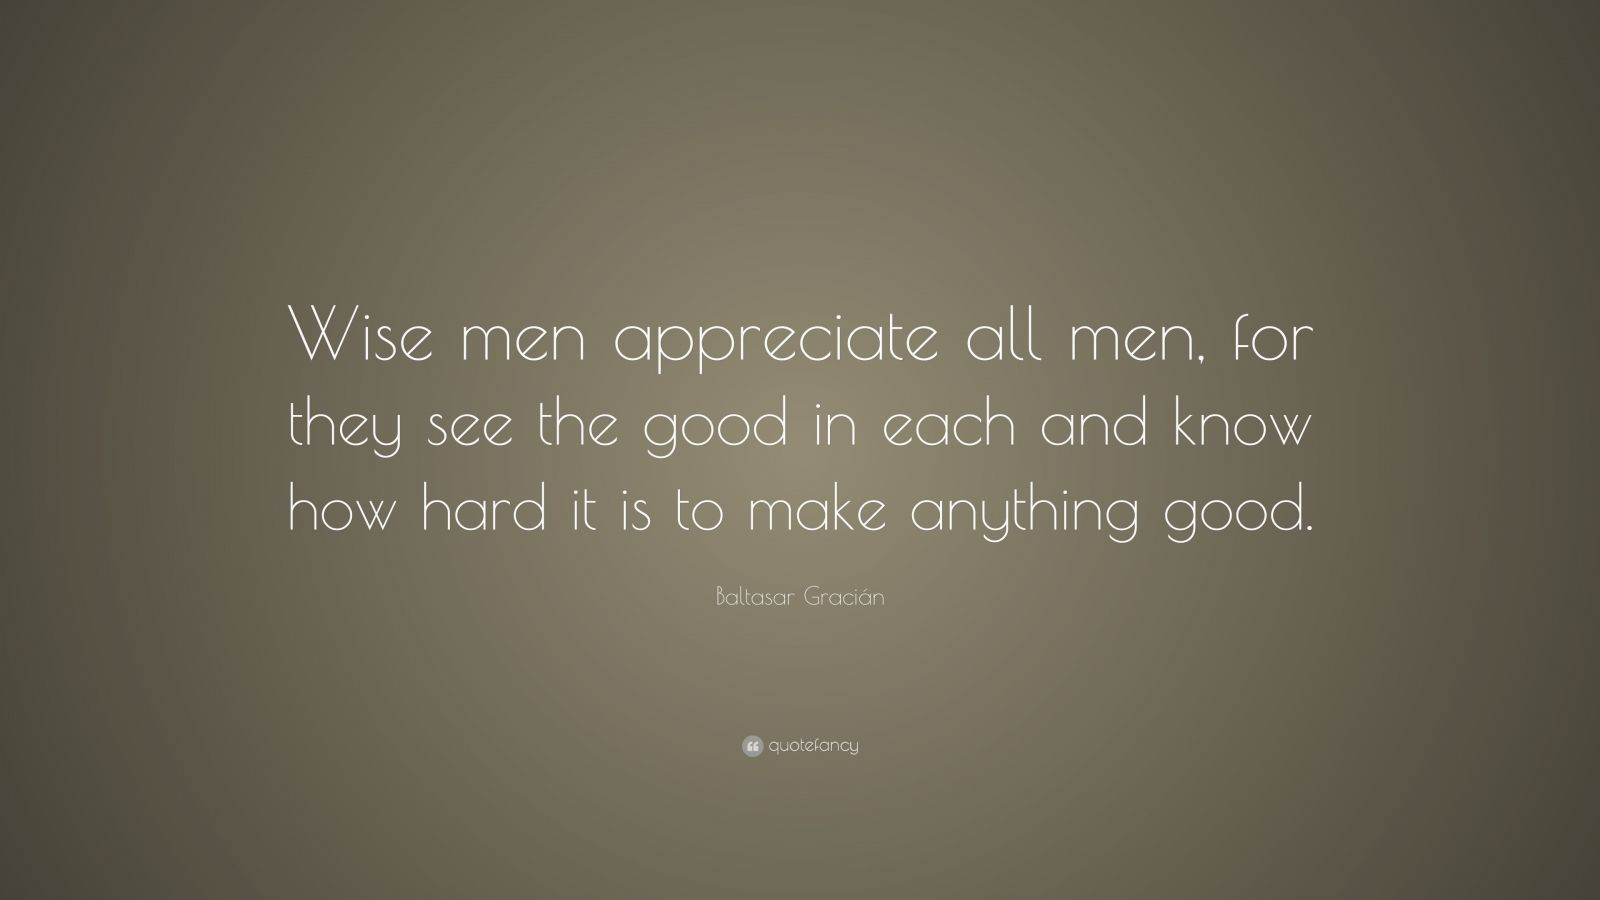 """Baltasar Gracián Quote: """"Wise men appreciate all men, for they see the good in each and know how hard it is to make anything good."""""""